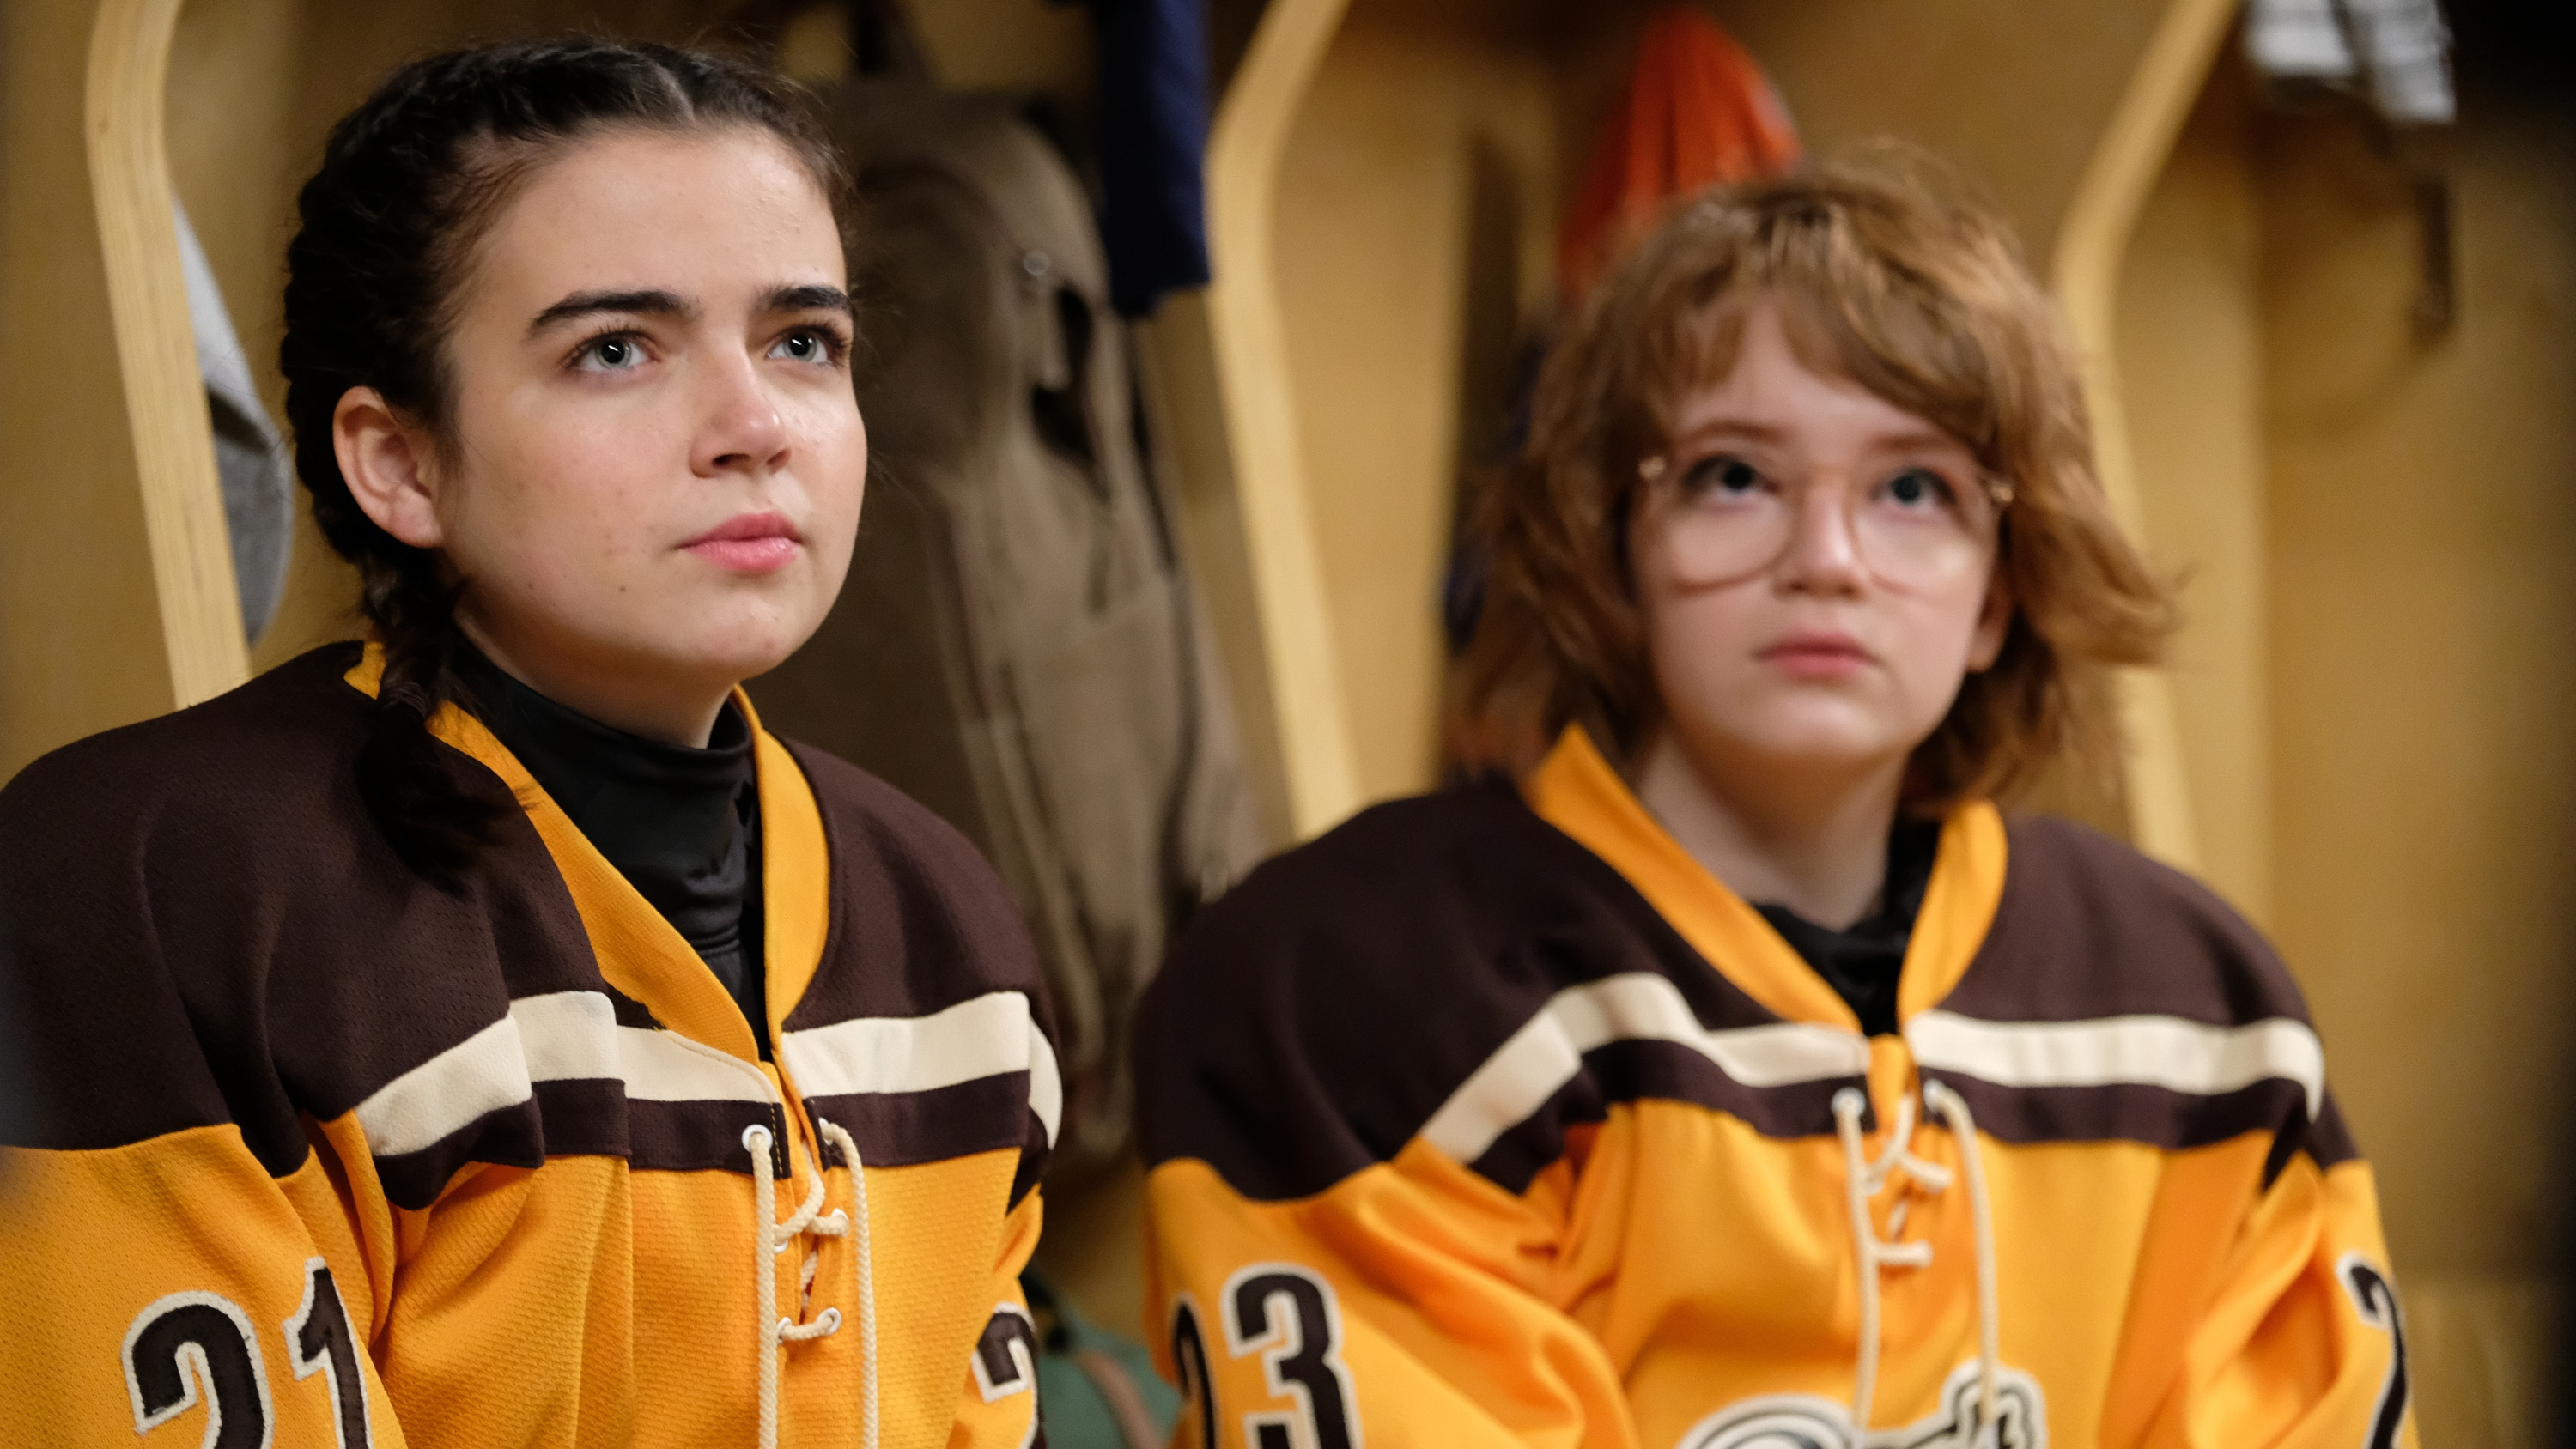 """THE MIGHTY DUCKS: GAME CHANGERS - """"State of Play"""" - The Don't Bothers are forced to choose what's really important, as they face the Ducks at States. (Disney/Liane Hentscher) TAEGEN BURNS, BELLA HIGGINBOTHAM"""